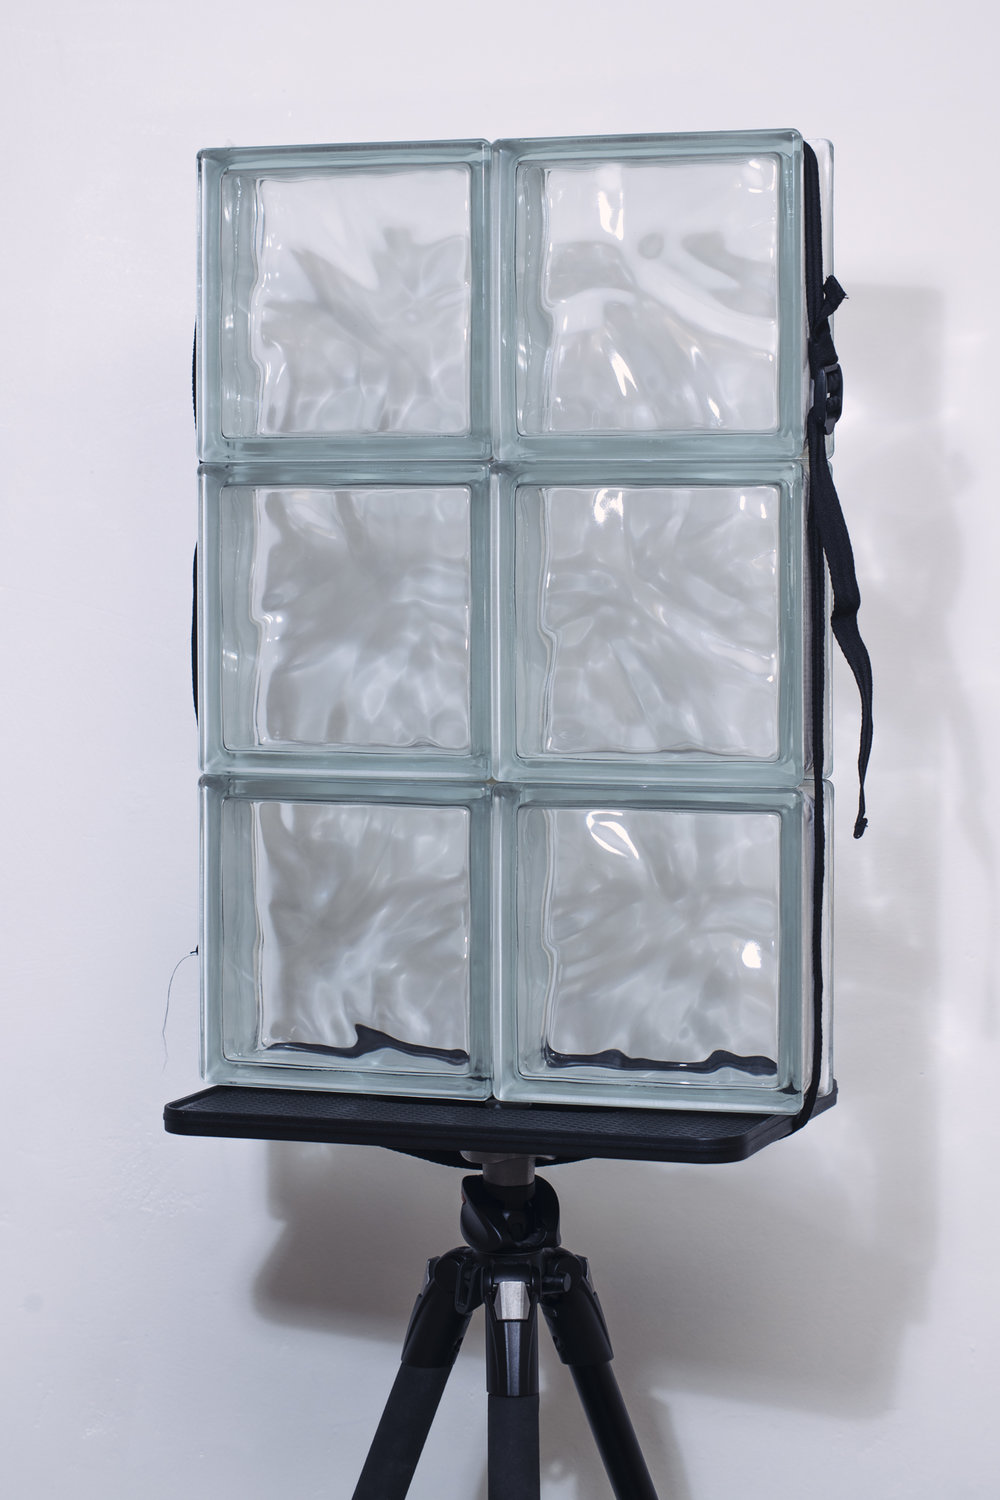 I supported my mini-glass wall on a tripod and laptop plate attachment.